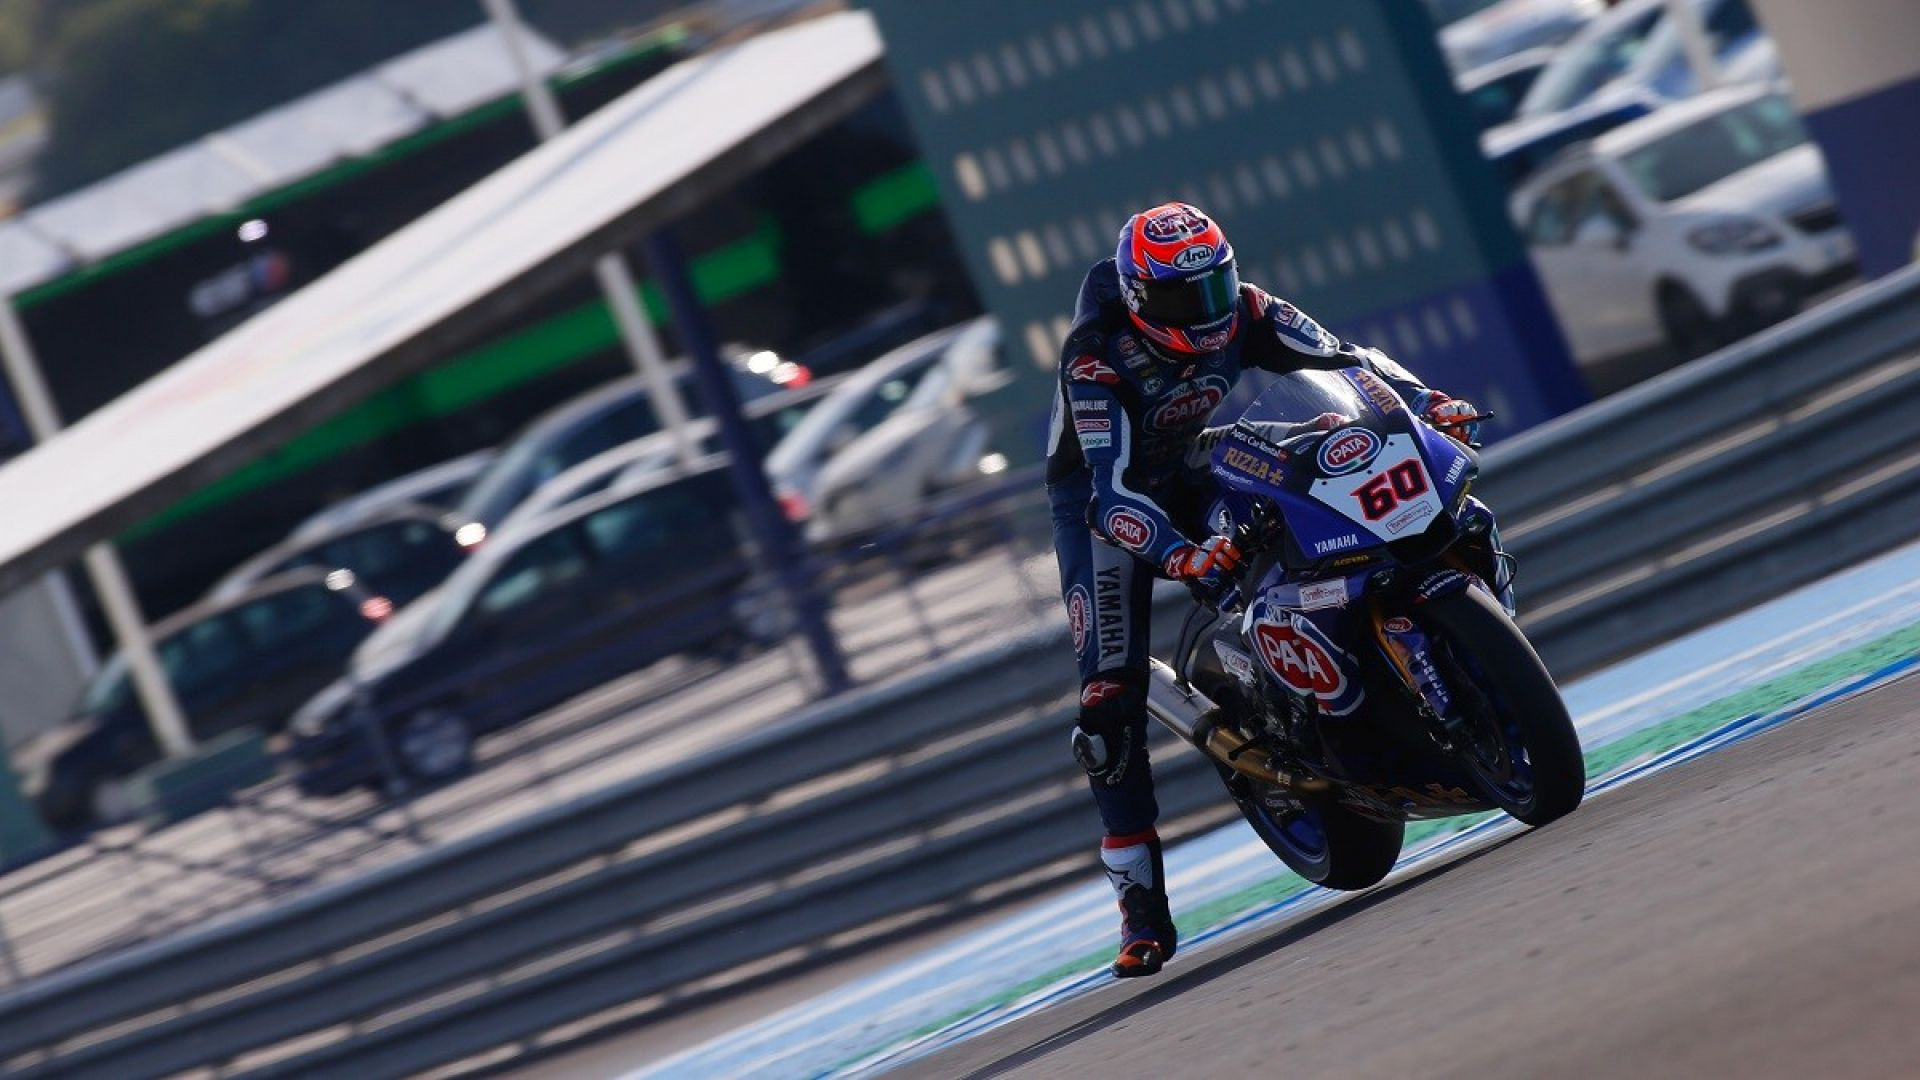 Image Result For Motogp Vs Sbk